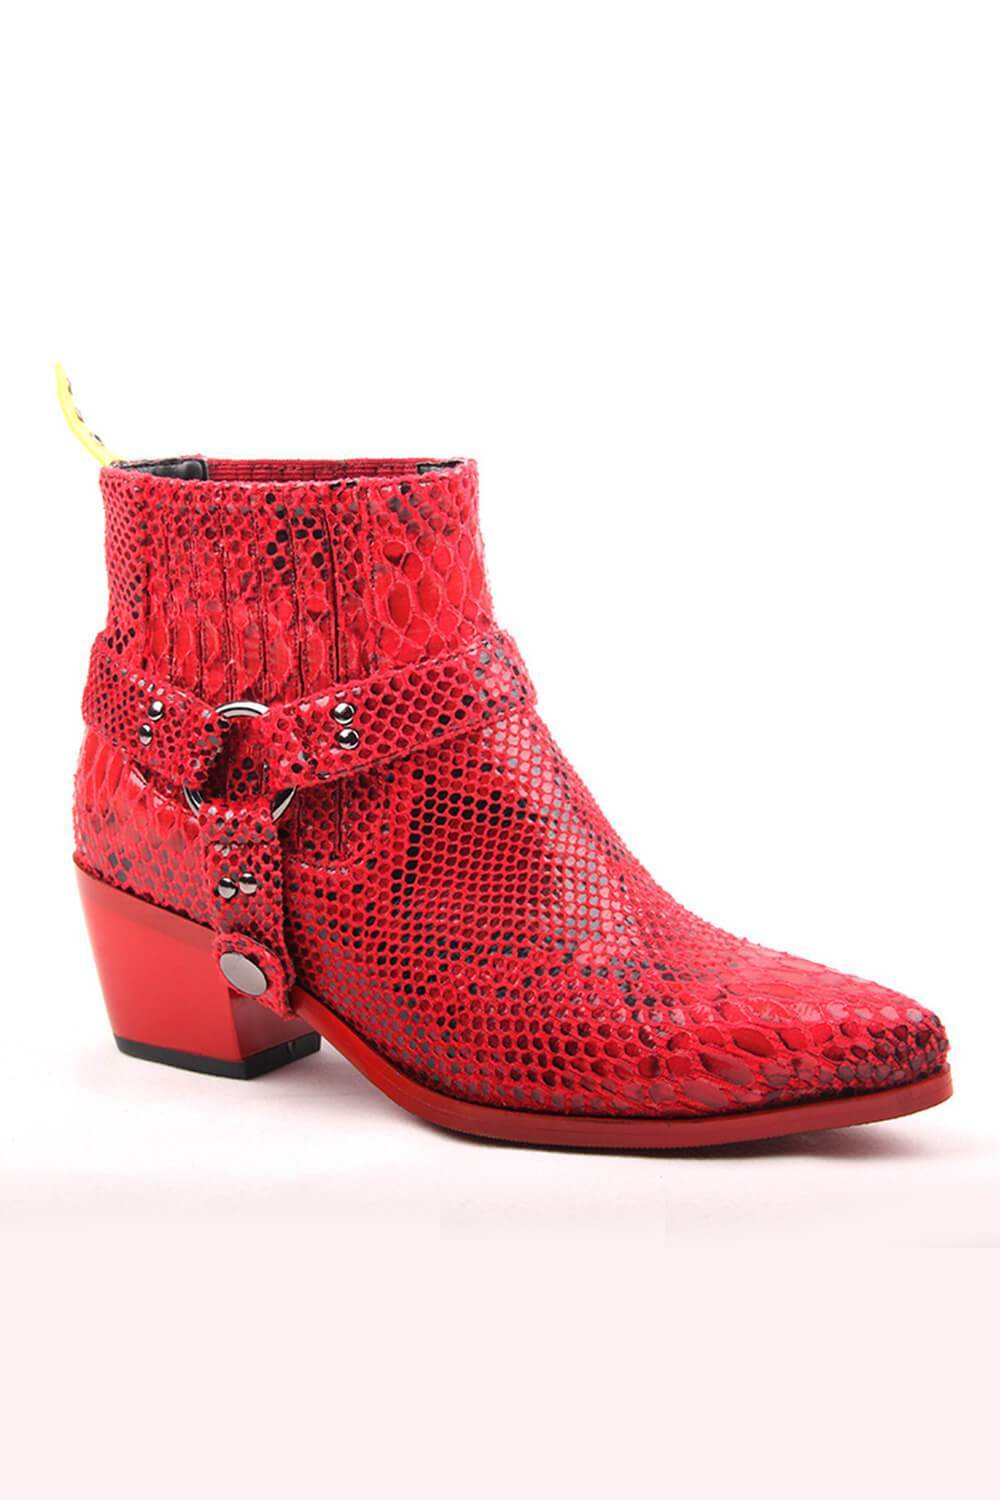 Red Snakeskin Western Chelsea Boot With Strap And Hardware Details